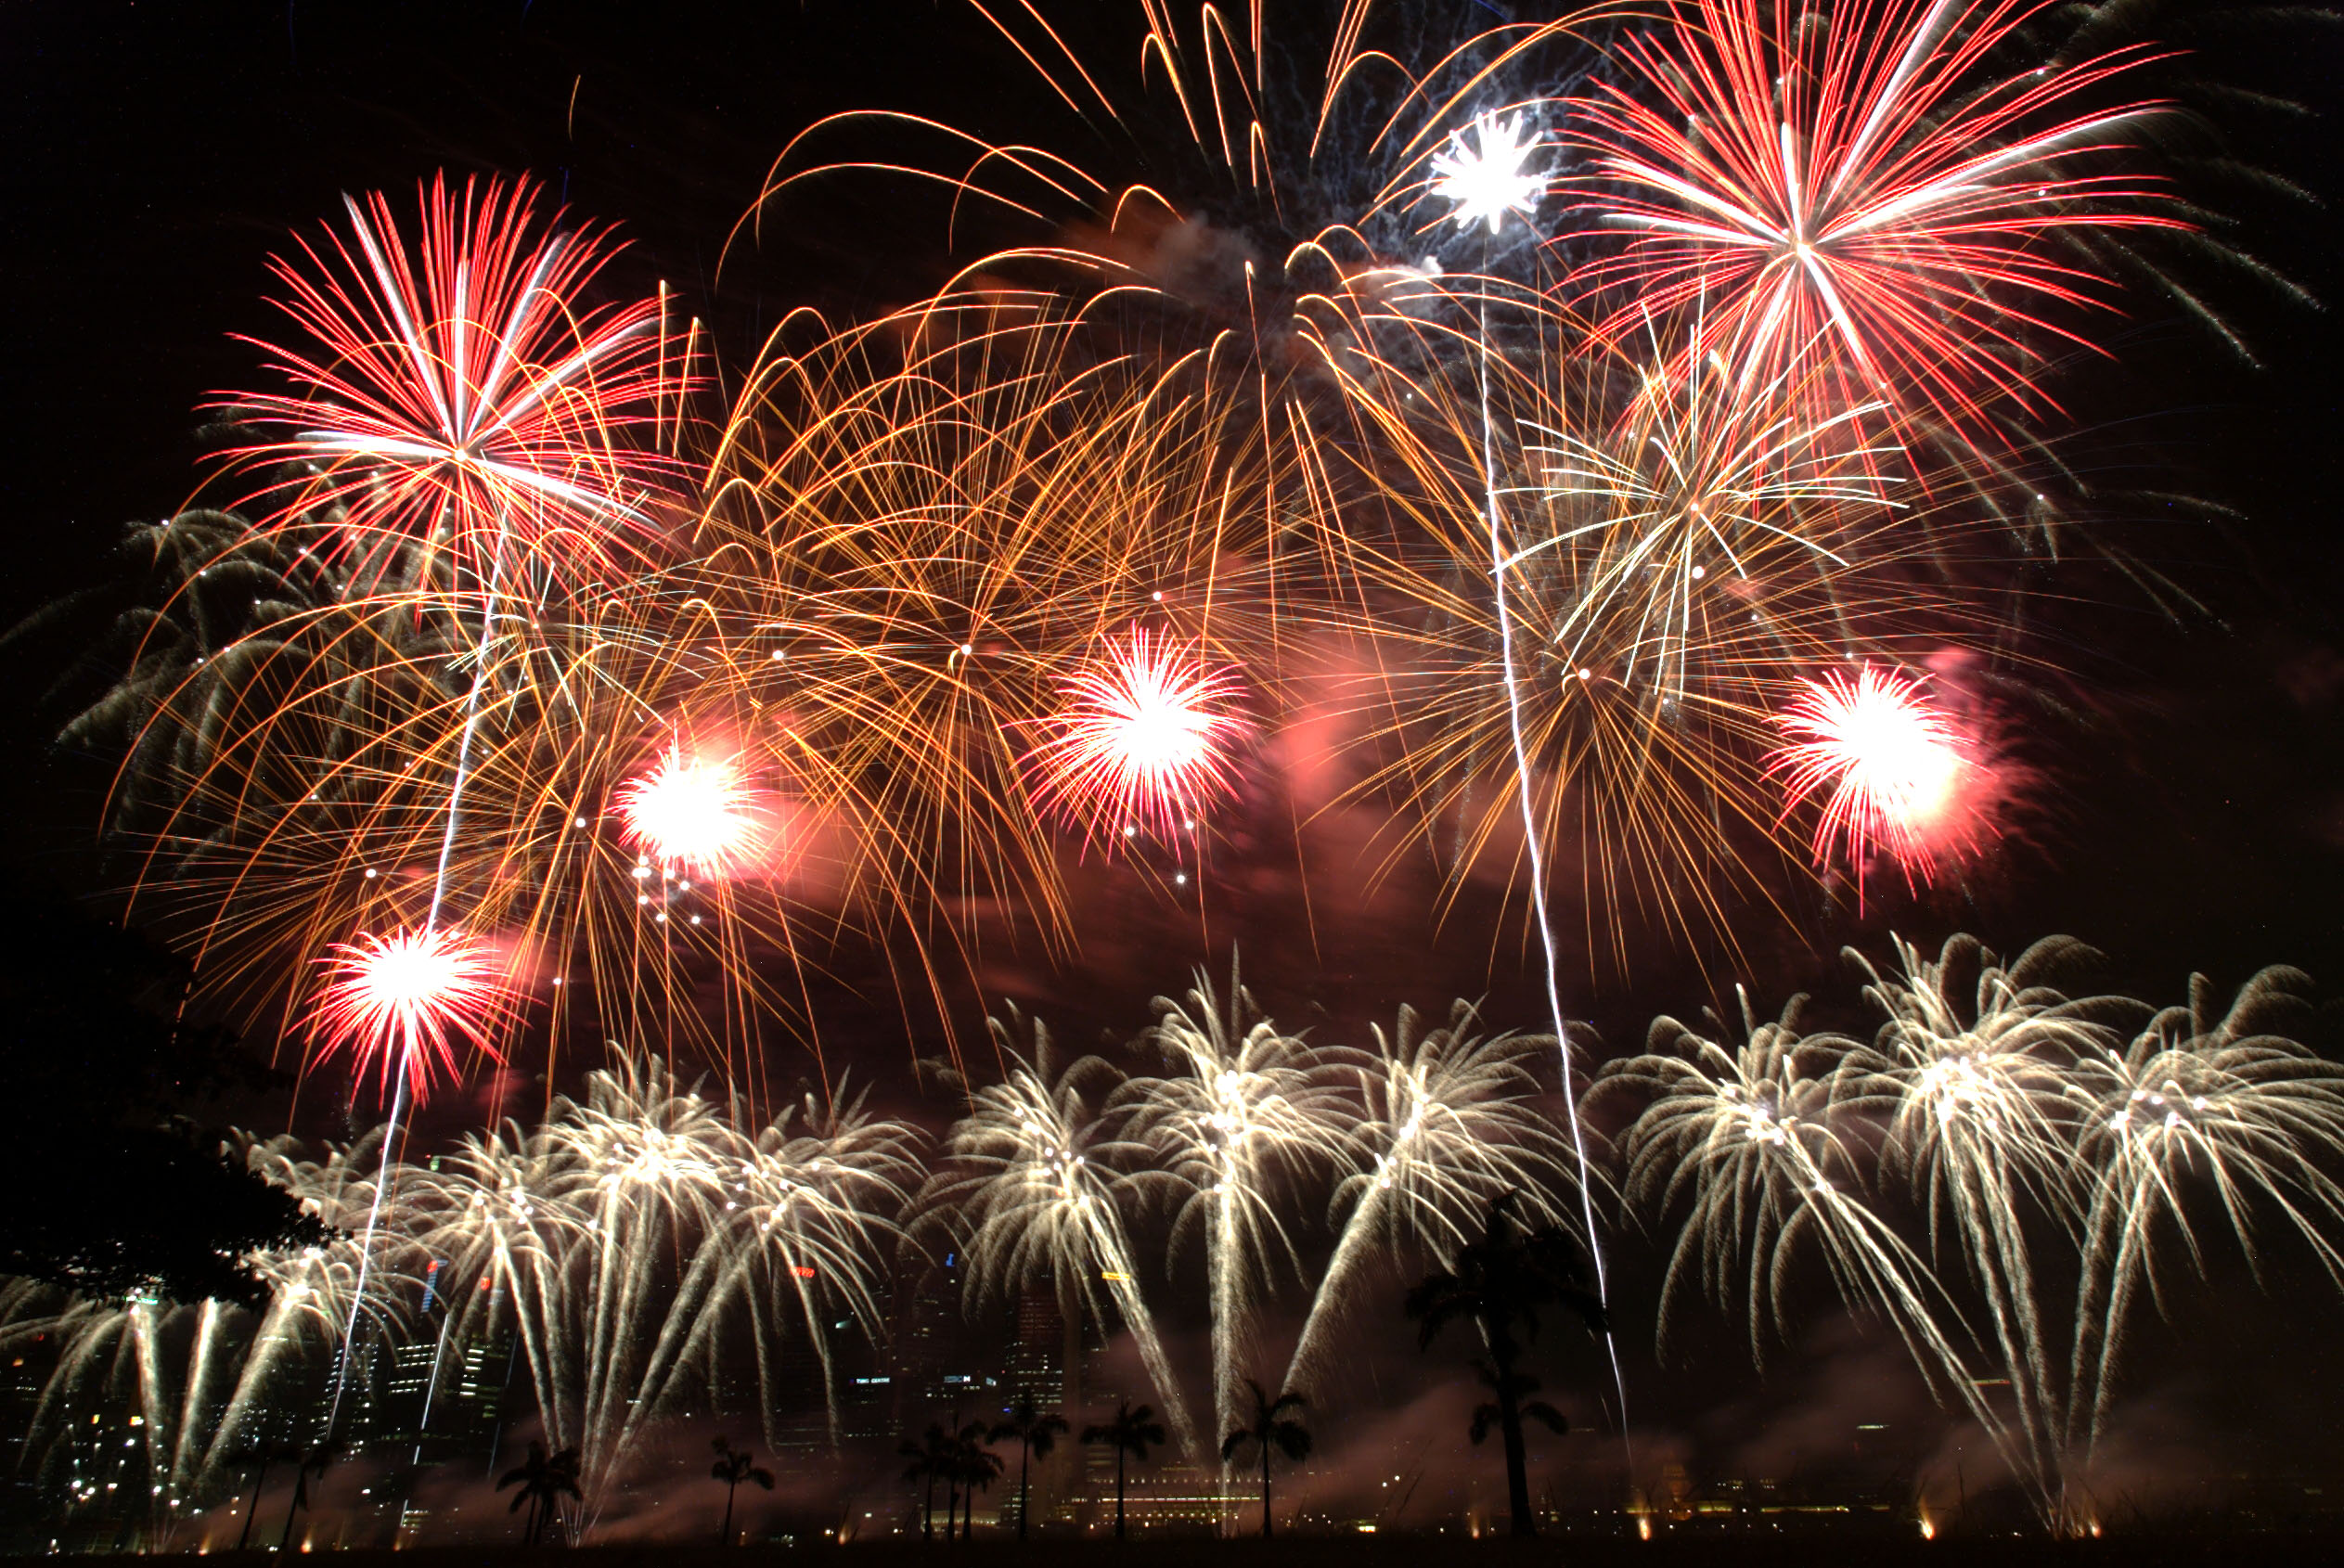 10 Worst Fireworks Disasters In History